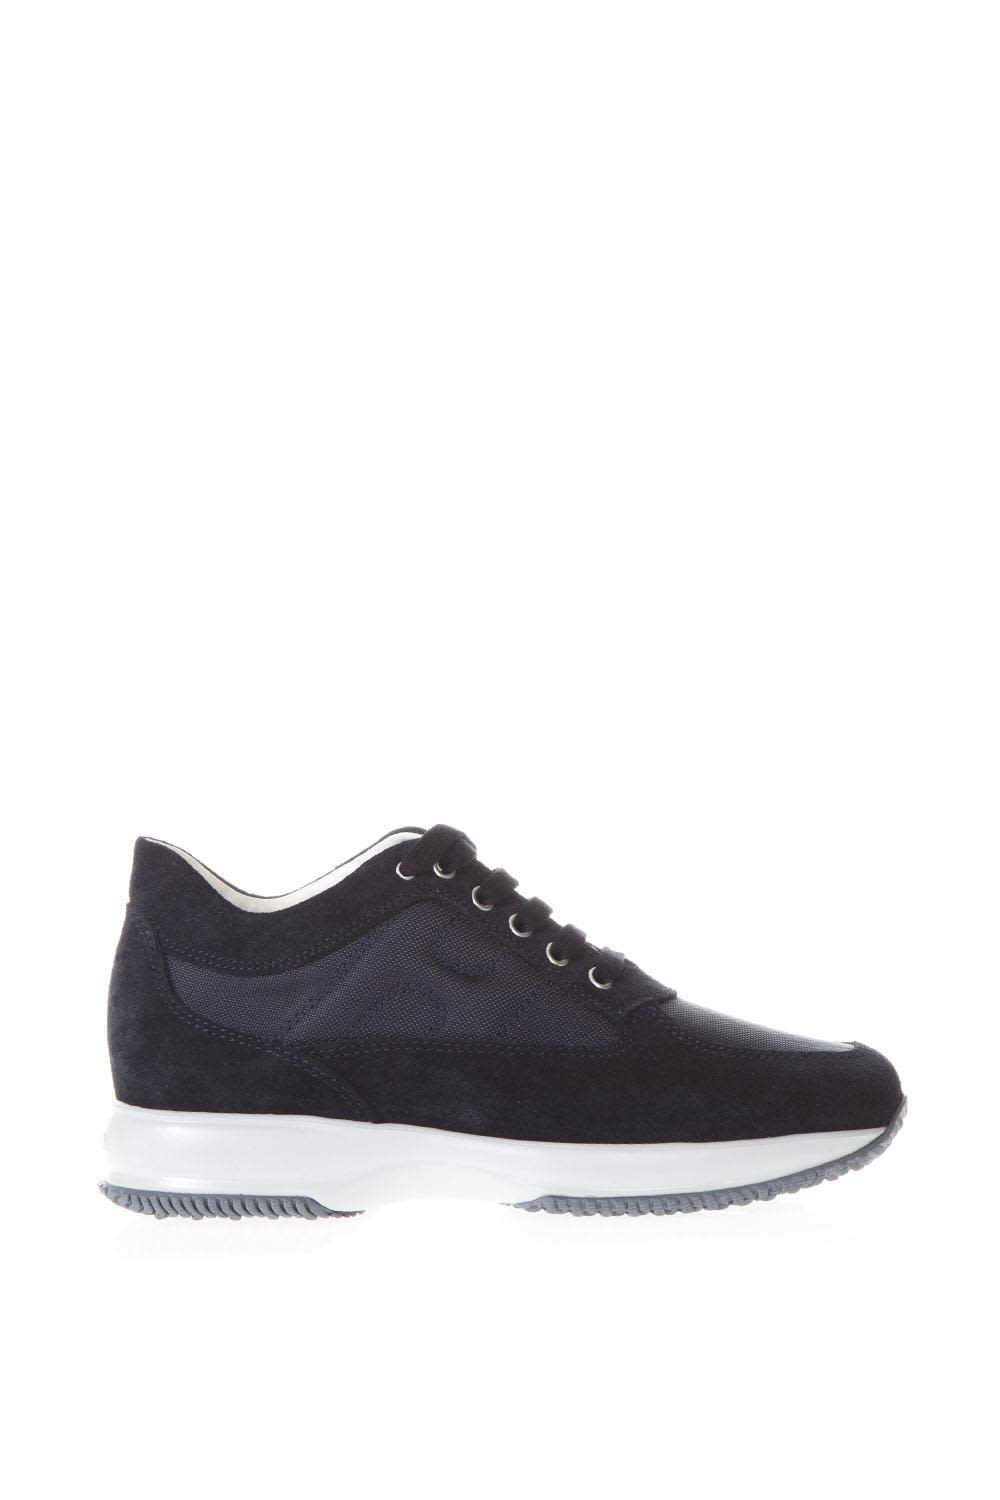 Hogan Interactive Blue Suede & Nylon Sneakers